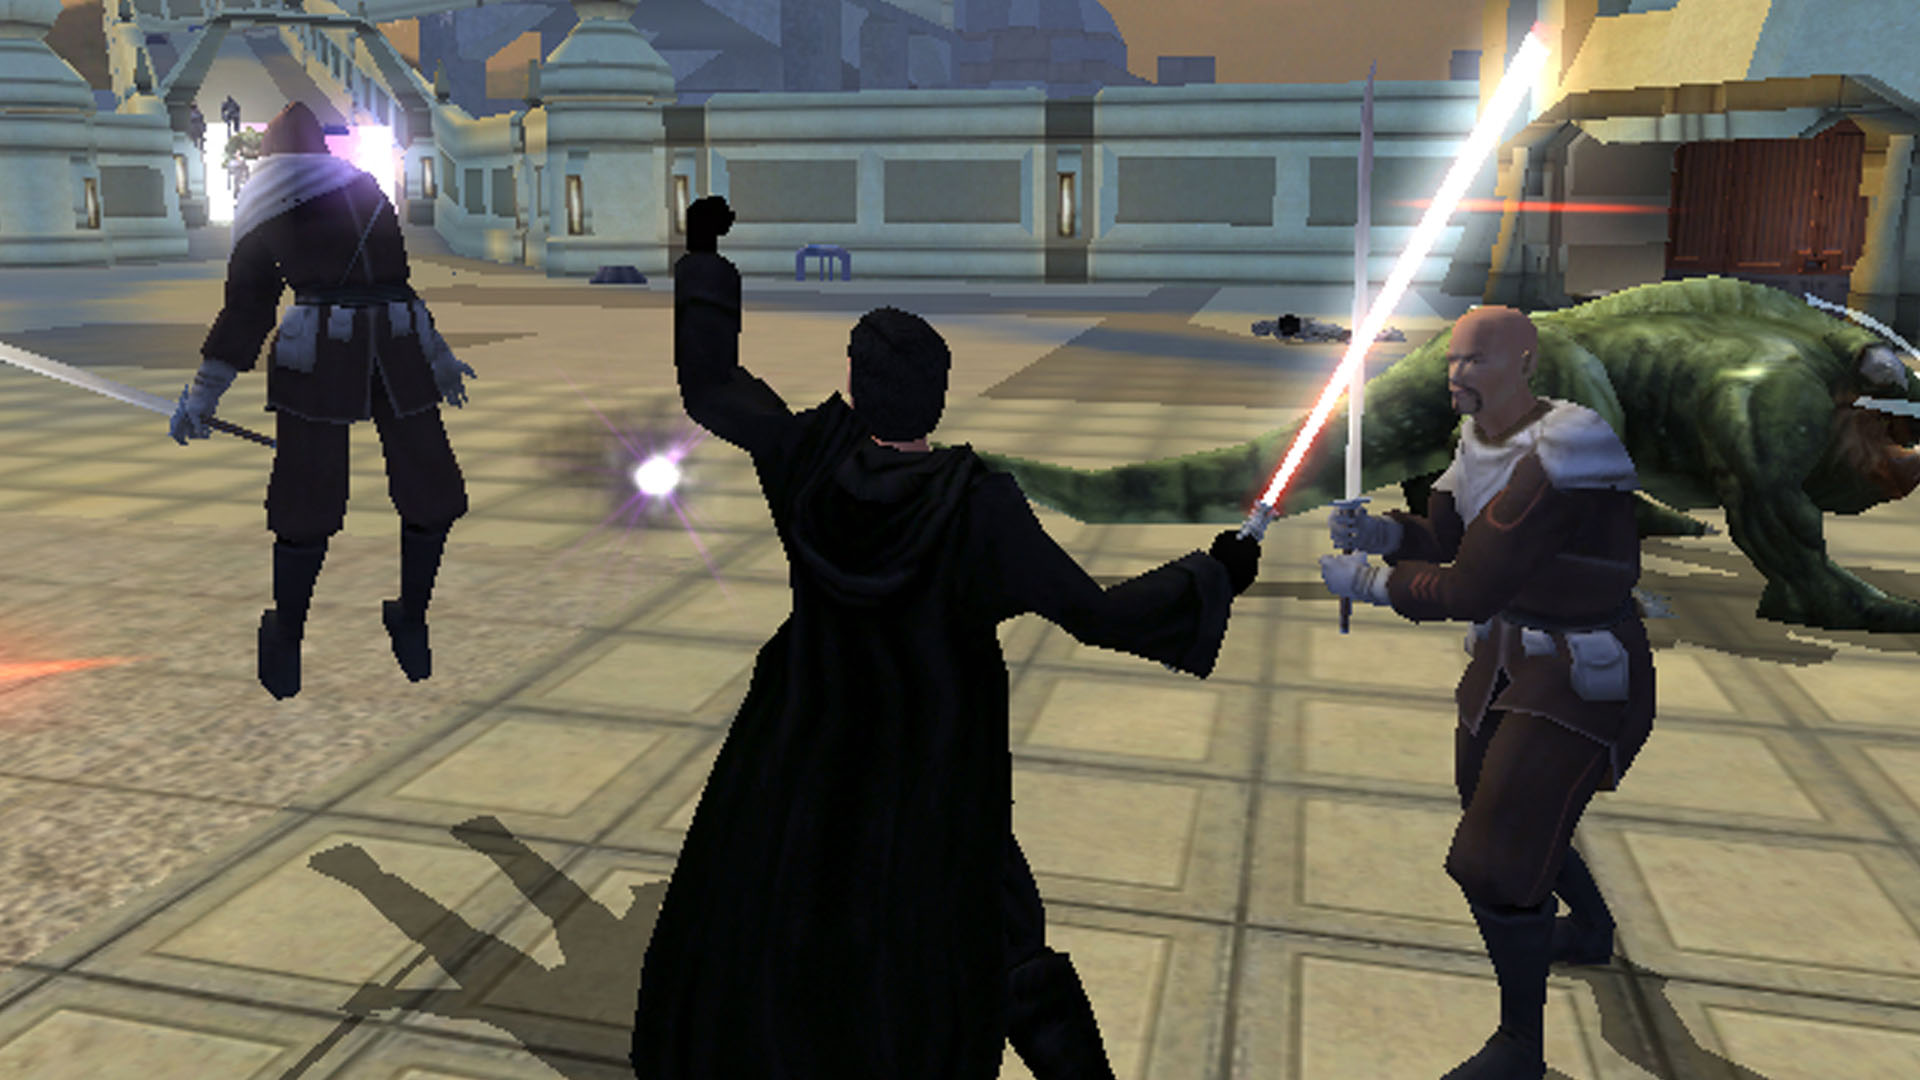 The fact that we could have had a Knights of the Old Republic 3 makes me want to force choke something